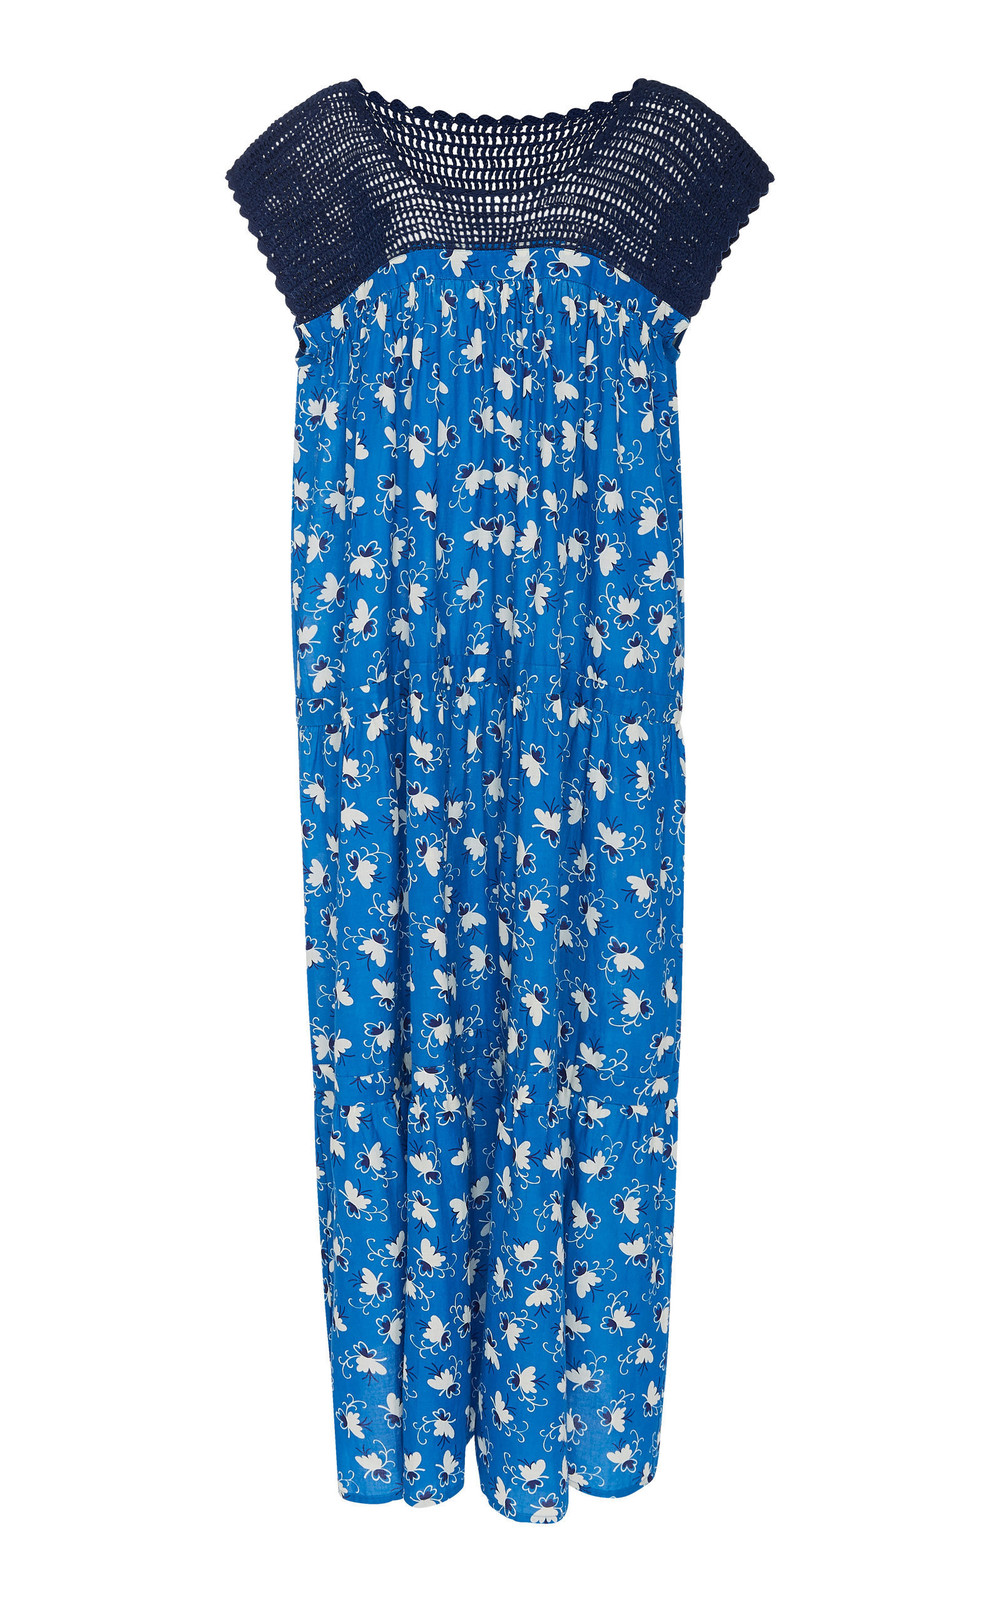 Warm Shade Printed Cotton Dress in blue